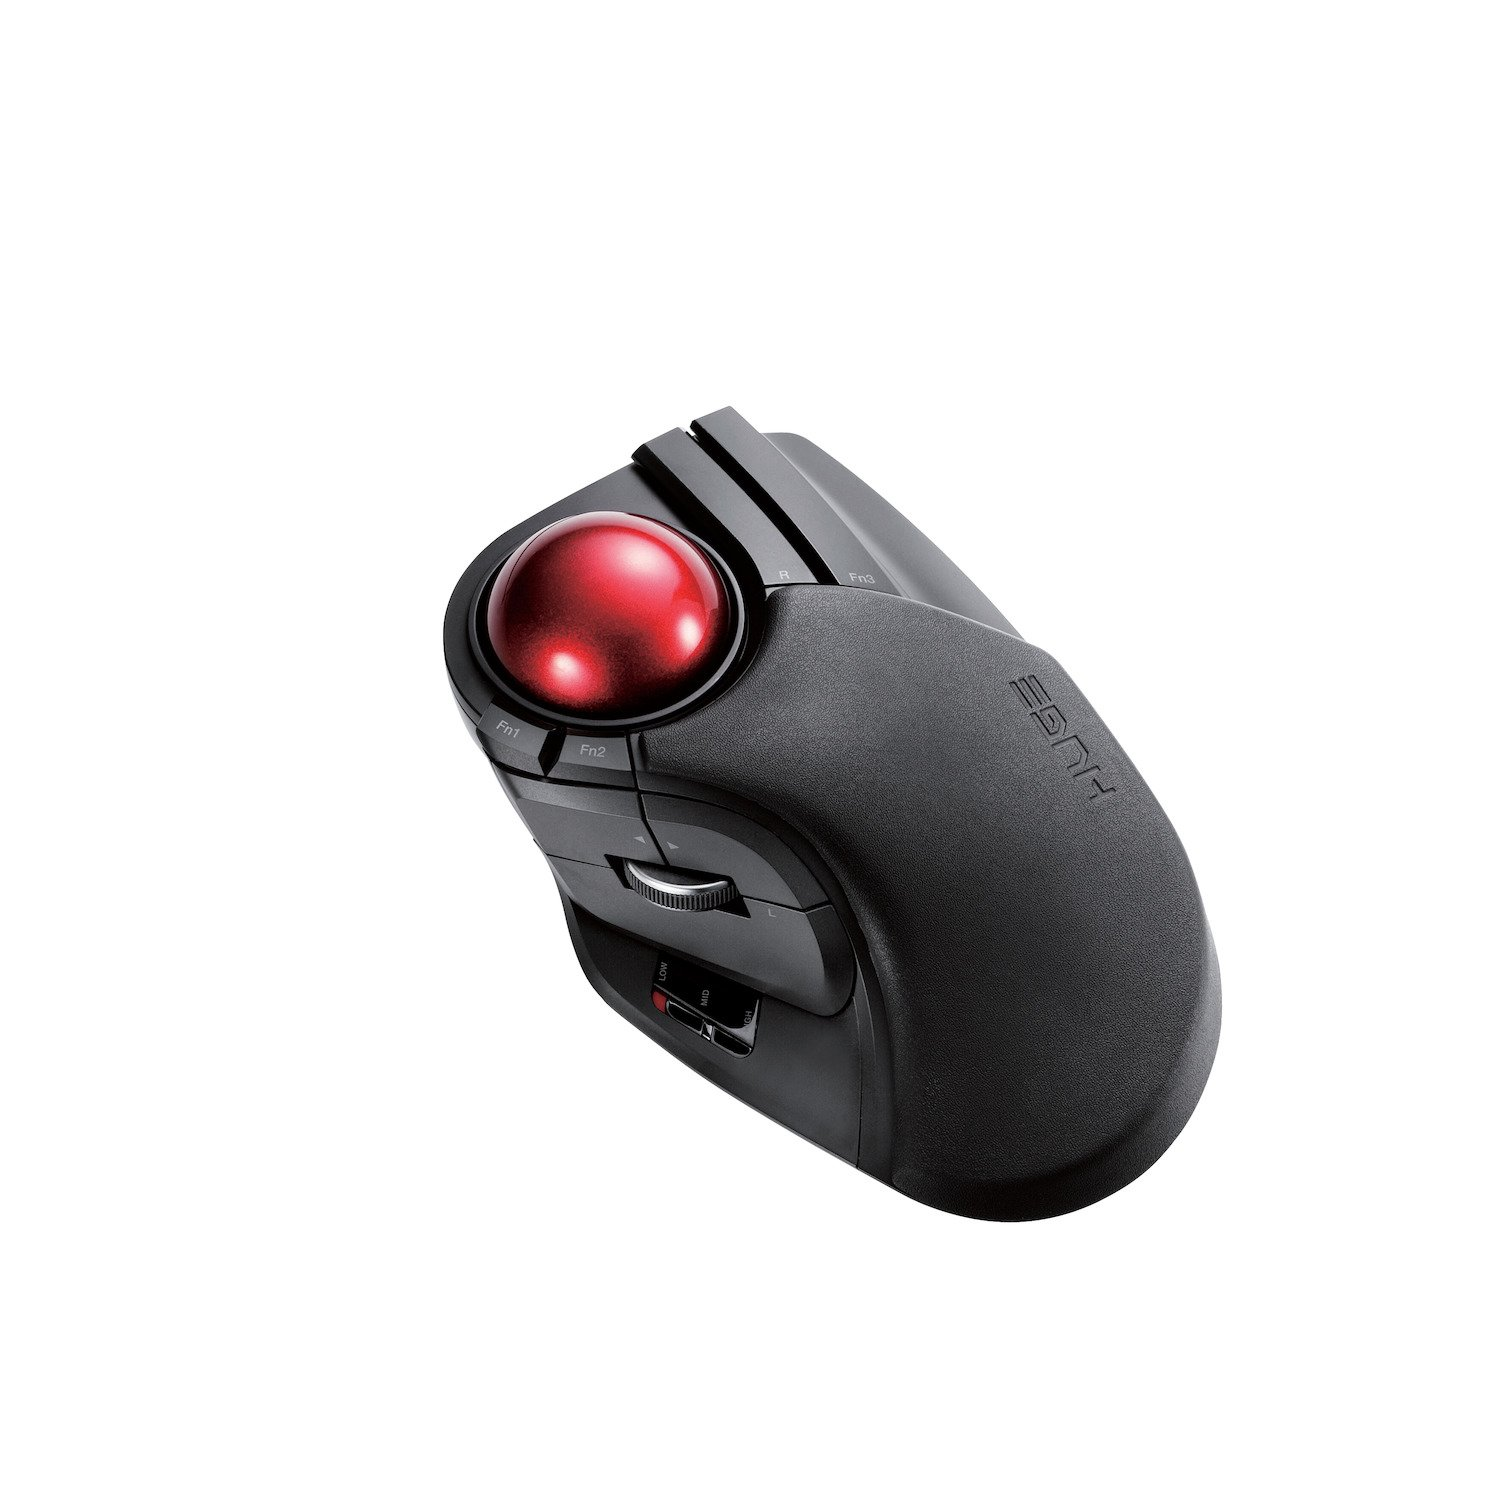 ELECOM Trackball Mouse M-DPT1MRXBK, Wired, Wireless, and Bluetooth, Gaming, High-Performance Ruby Ball, Advanced Responsiveness, 8 Mappable Buttons, Smooth Scrolling, Extra Large, DEFT PRO, Black Elecom Japan (PC)